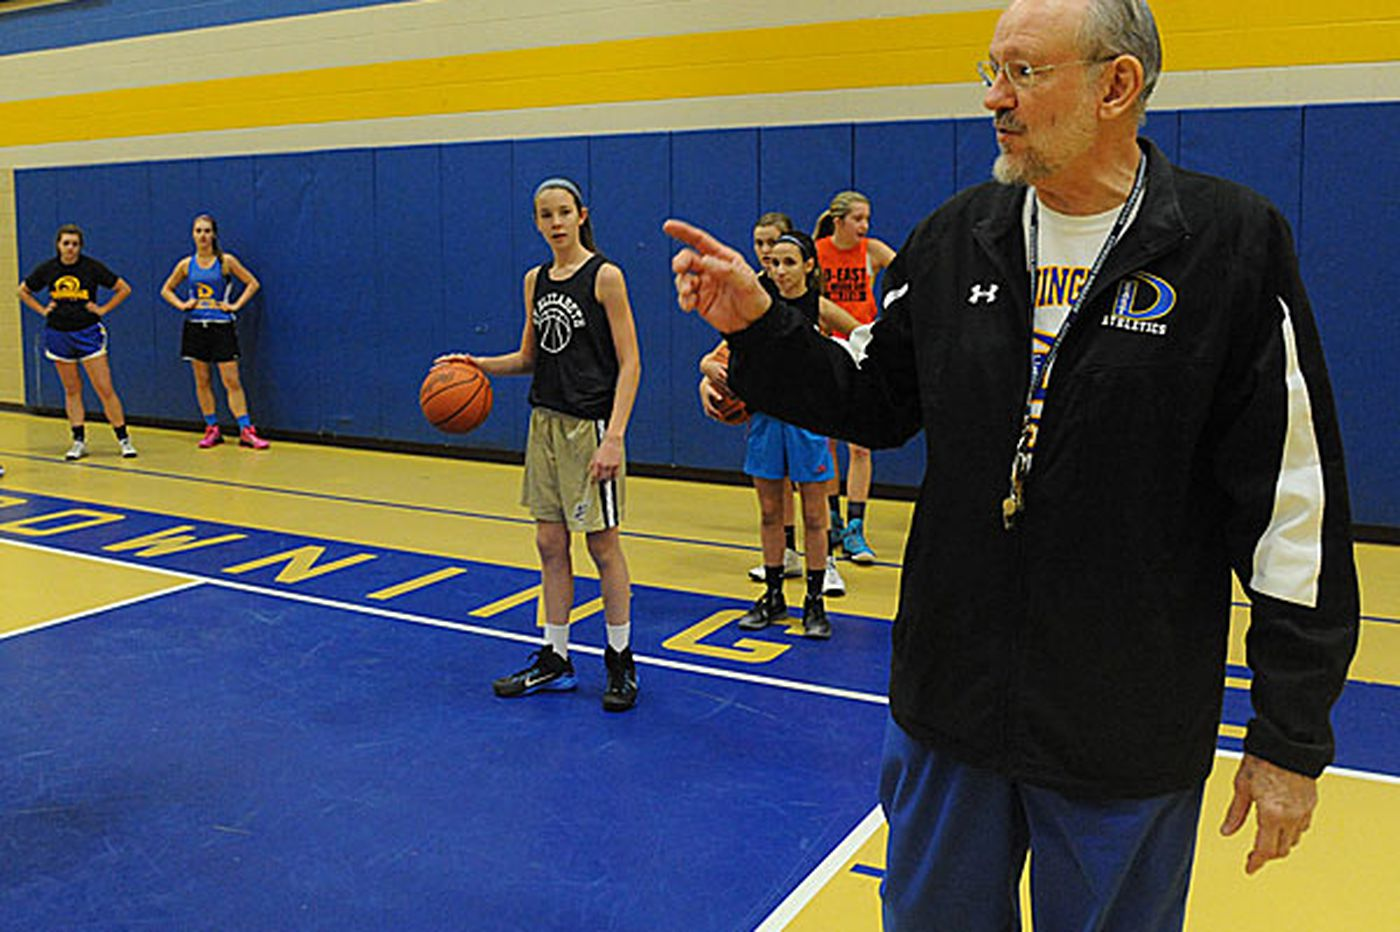 Downingtown East's Schnure back where he was all along